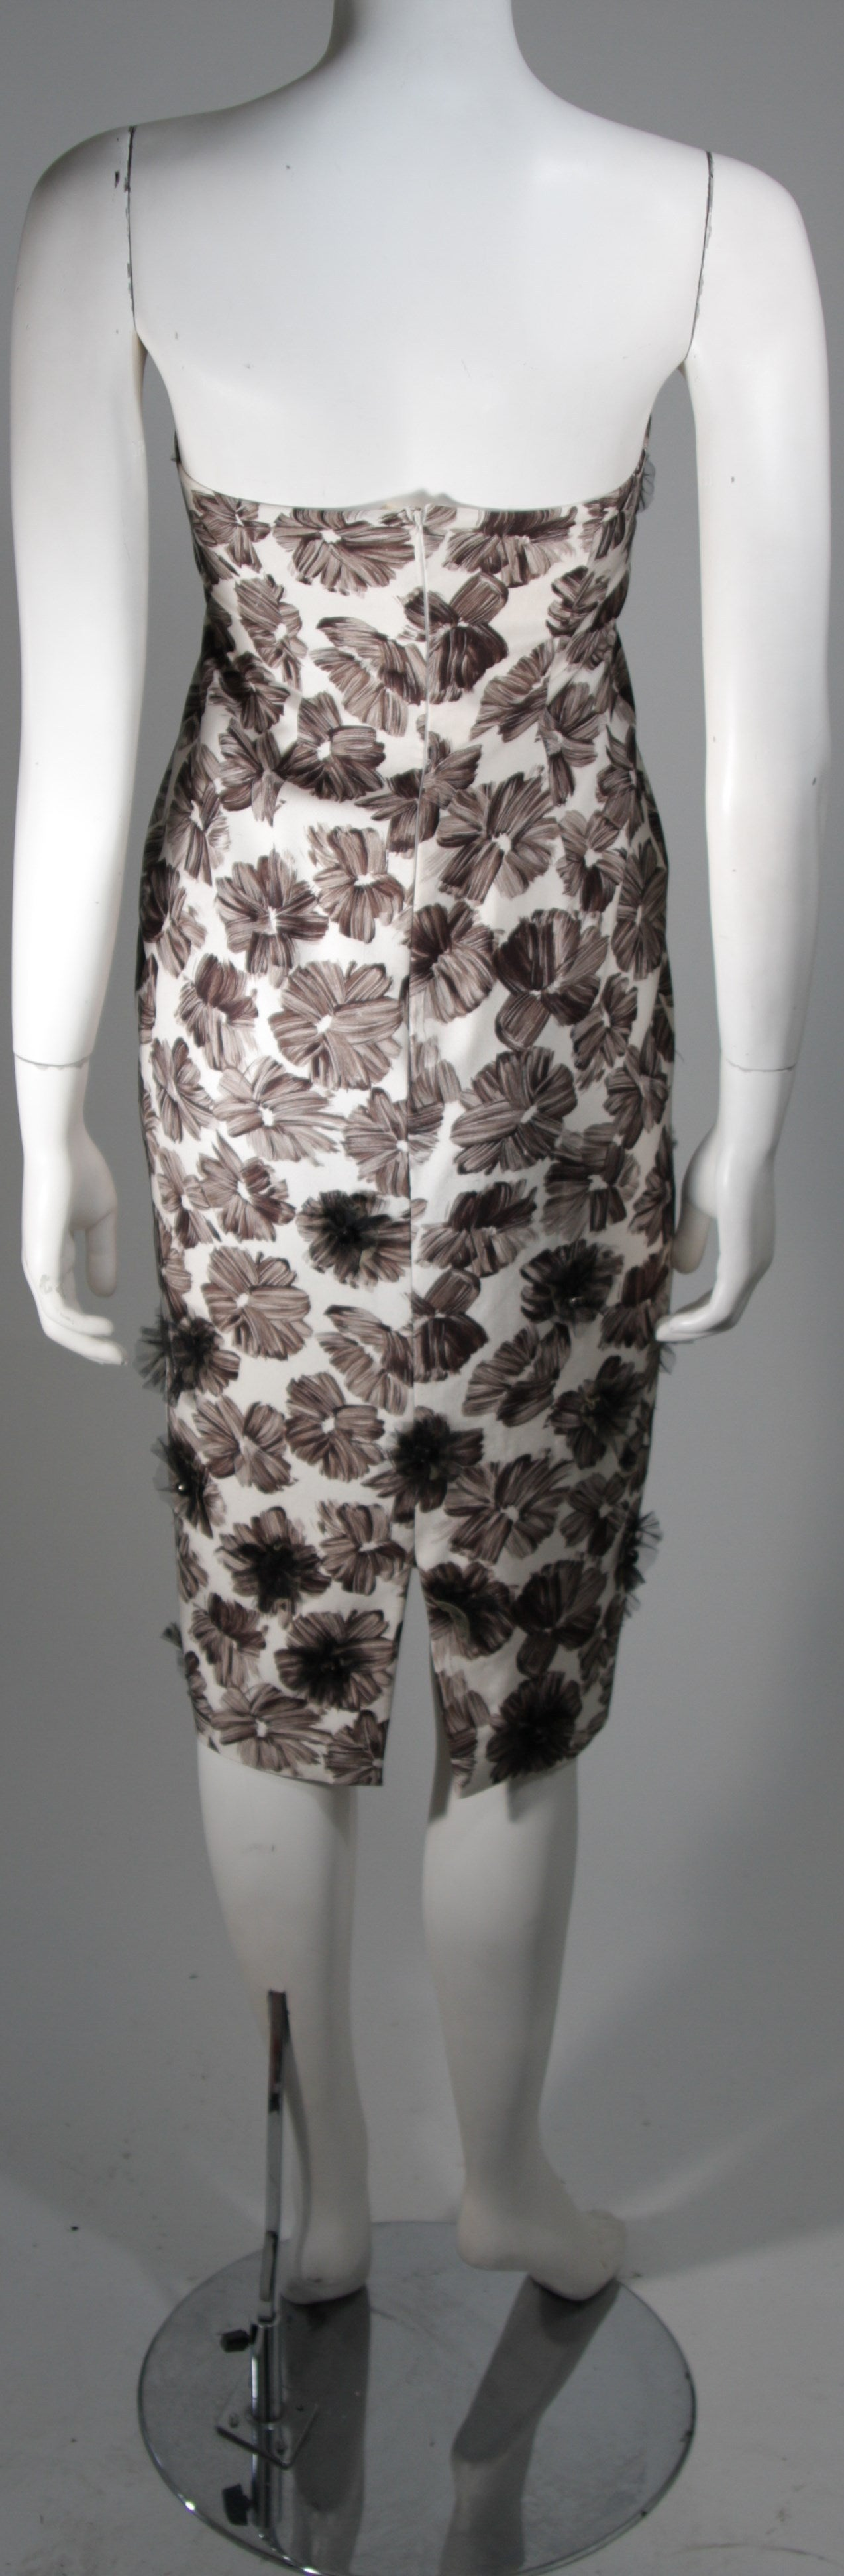 GIAMBATTISTA VALLI White Strapless Floral Print Rhinestone Detail Dress Size 40 For Sale 2